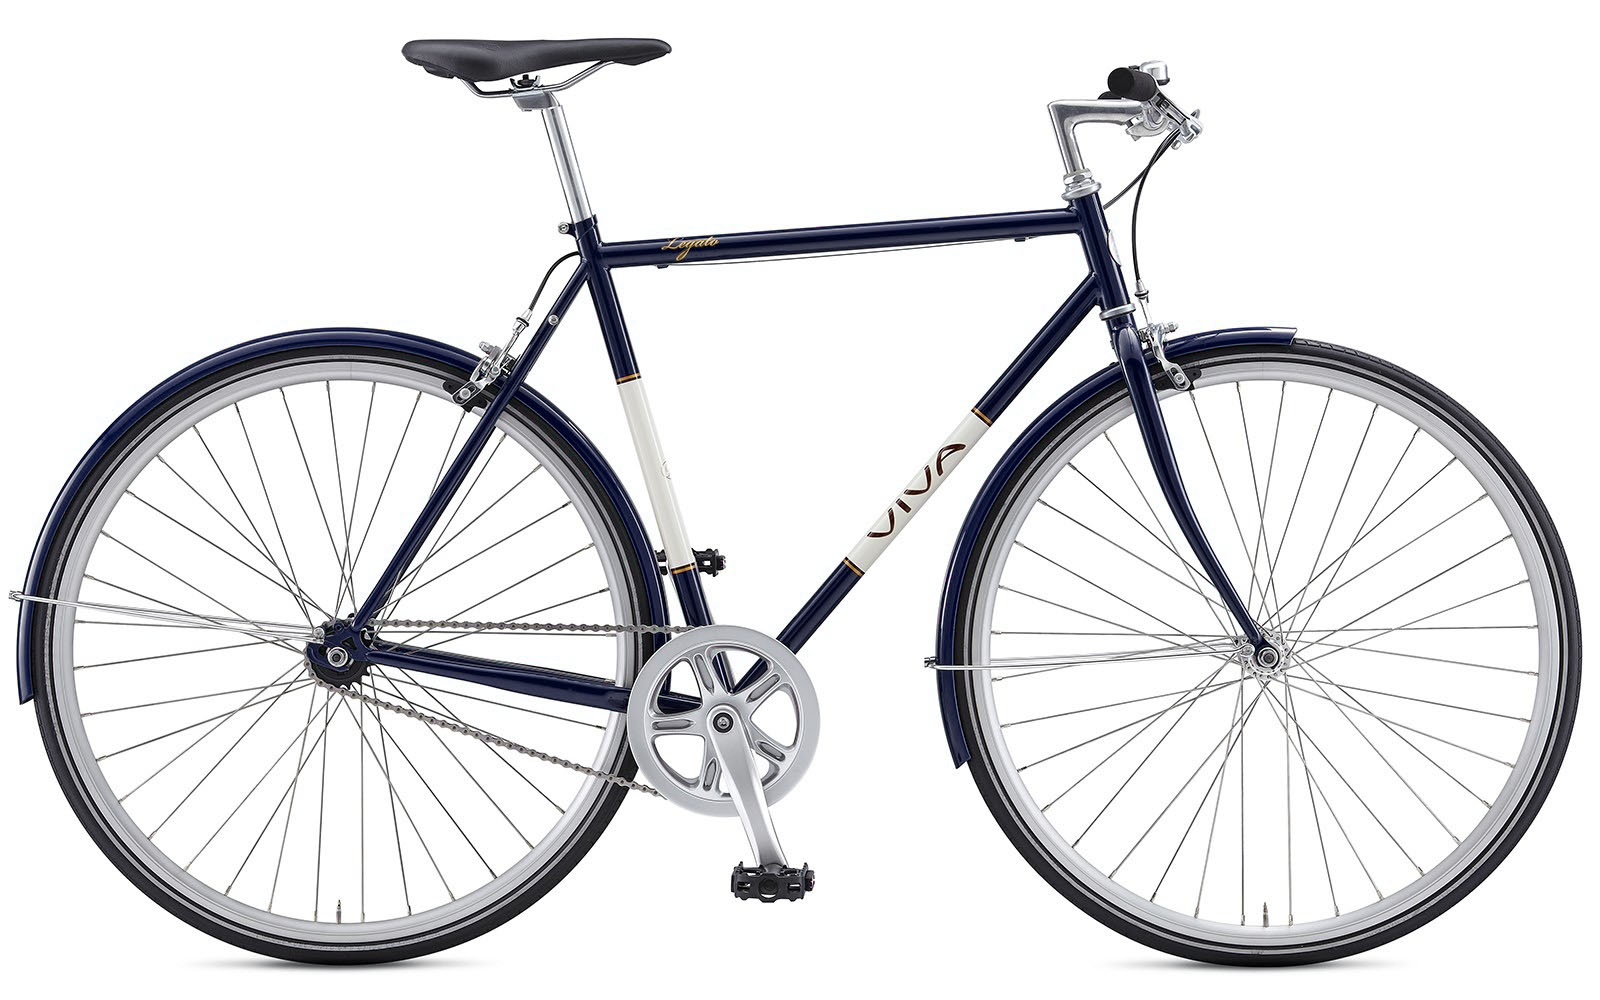 Viva Legato 1 Single Speed Bicycle